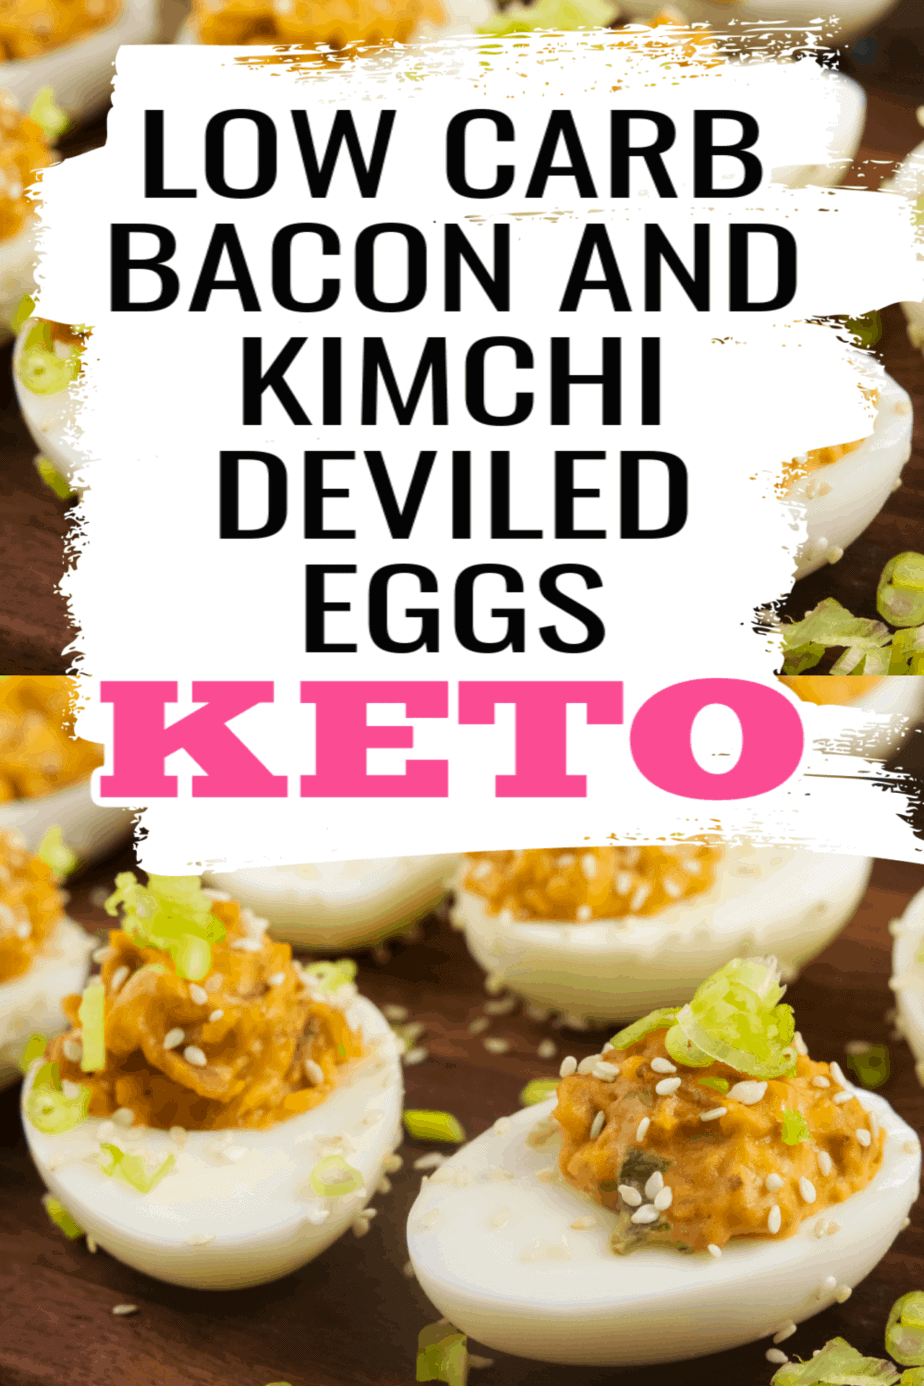 Low Carb Keto Bacon and Kimchi Deviled Eggs Recipe